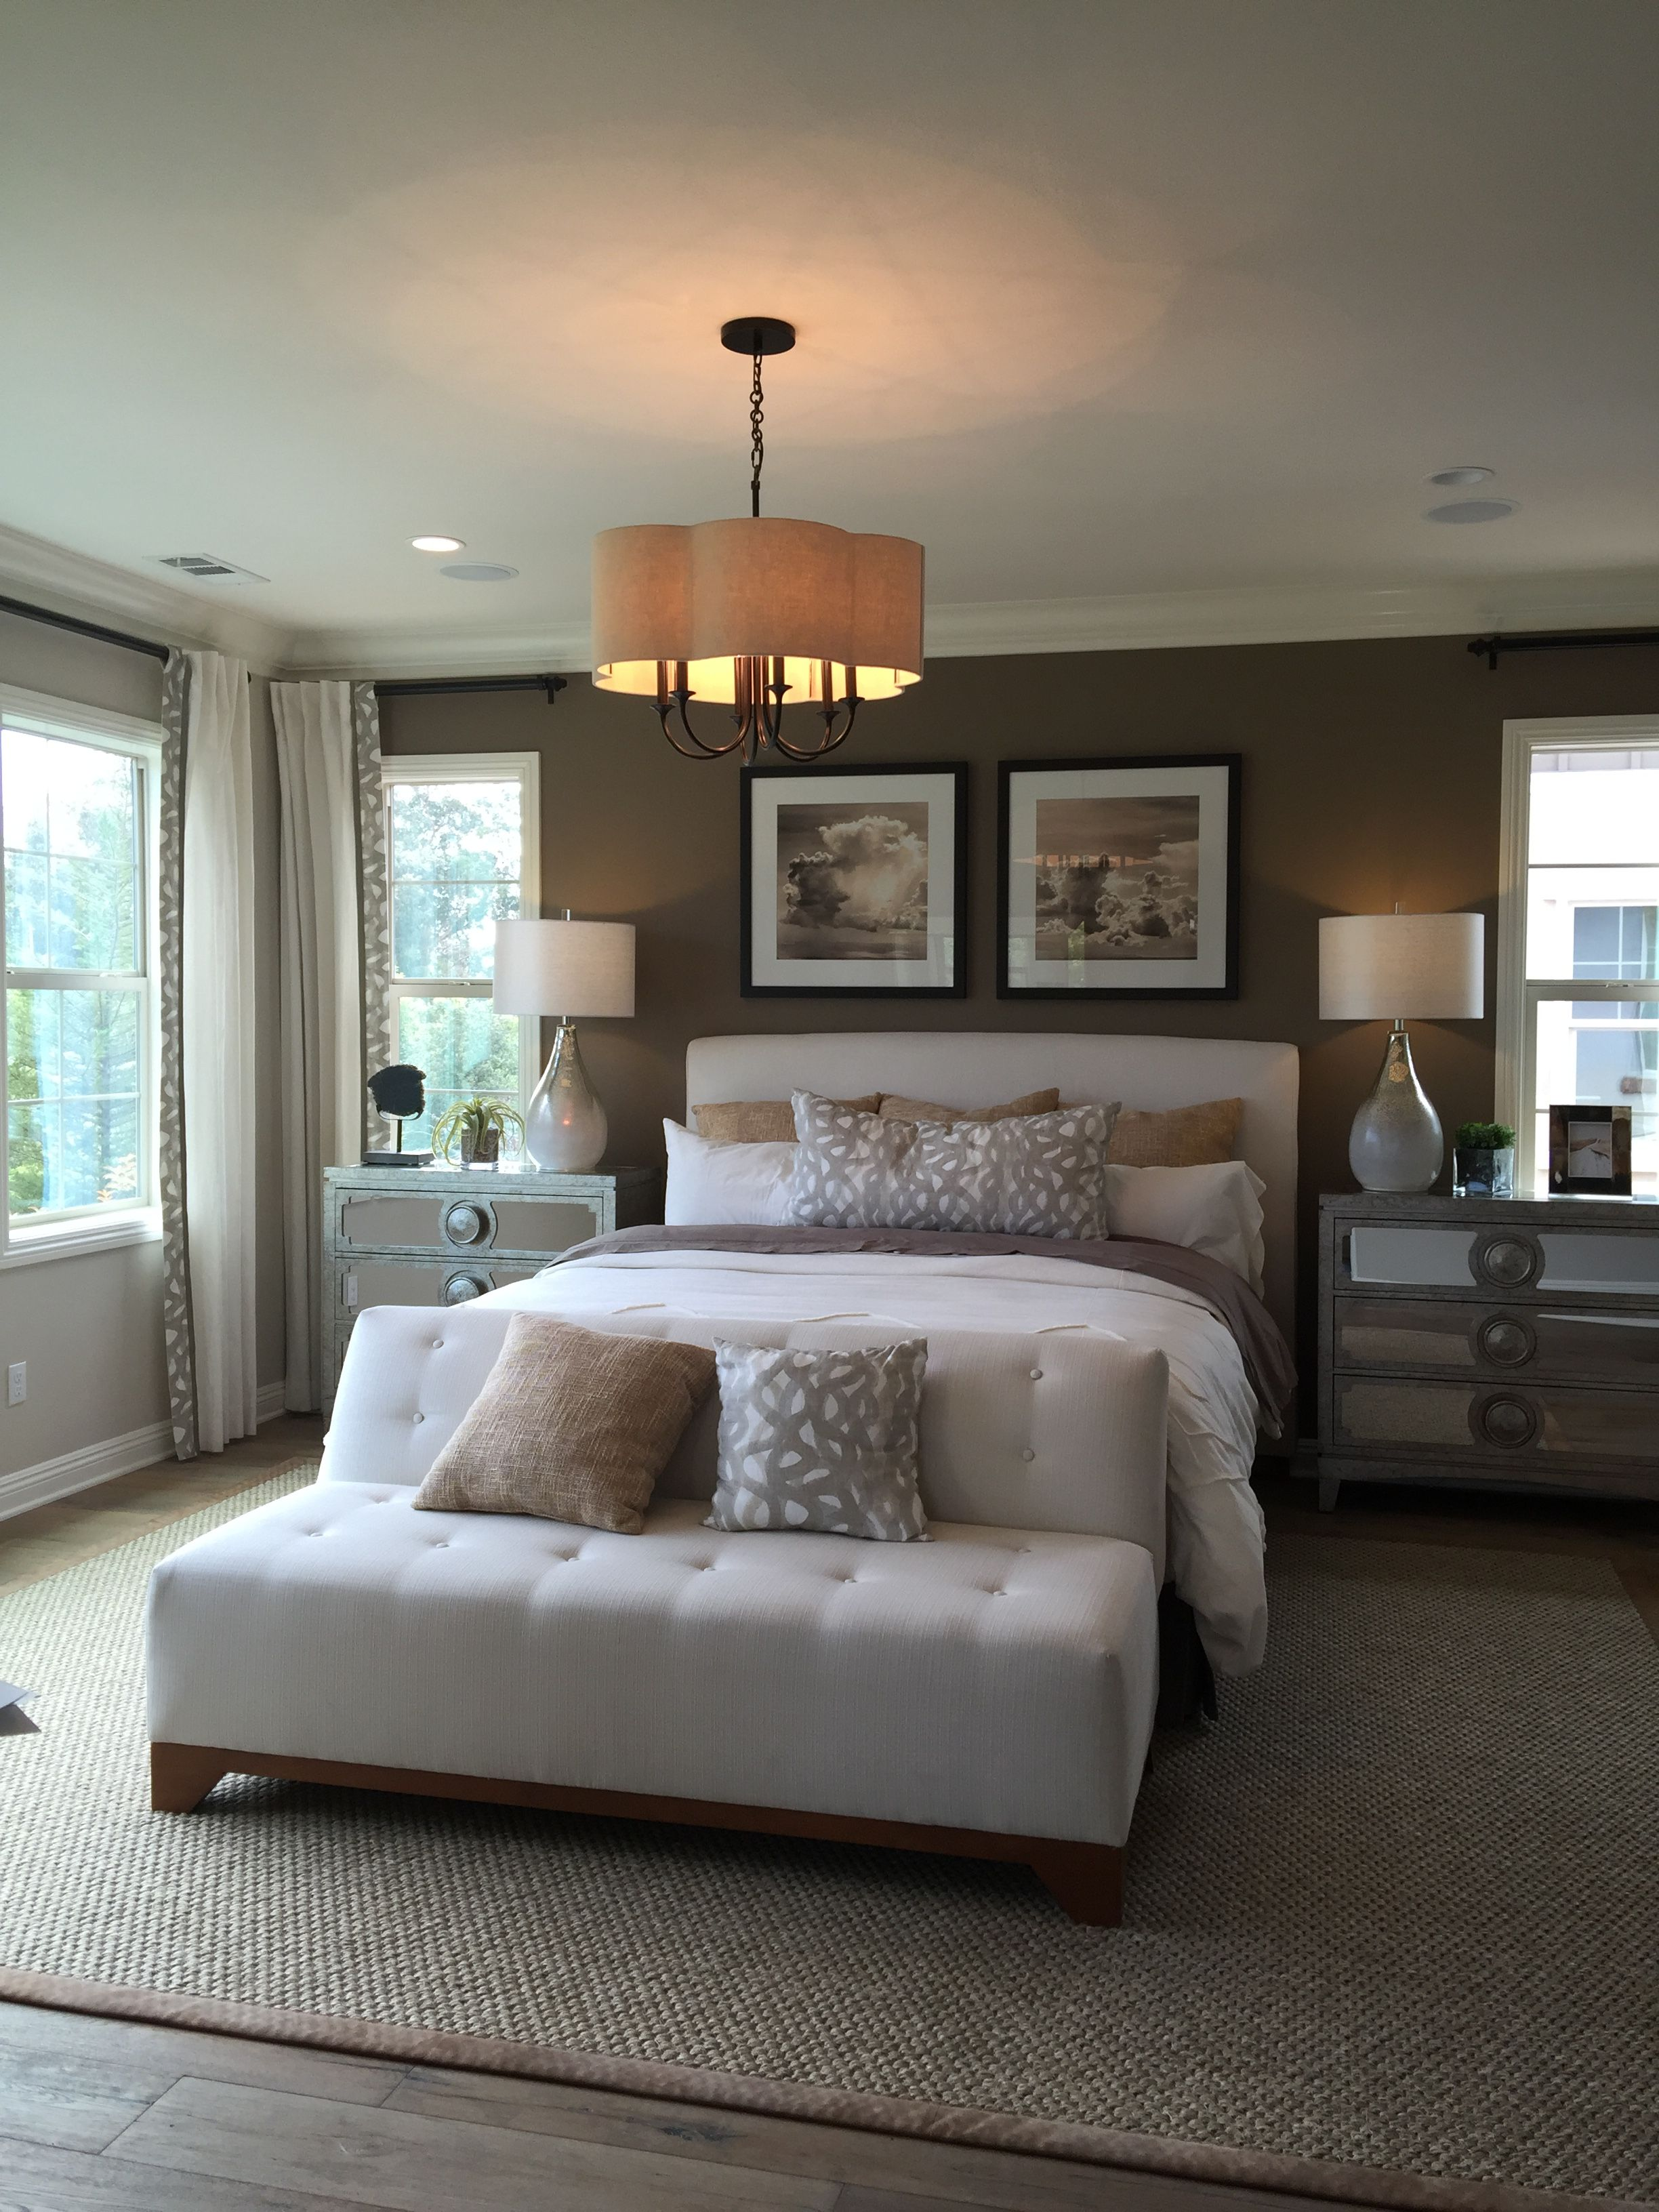 Master Bedroom: Night Stands And Lighting